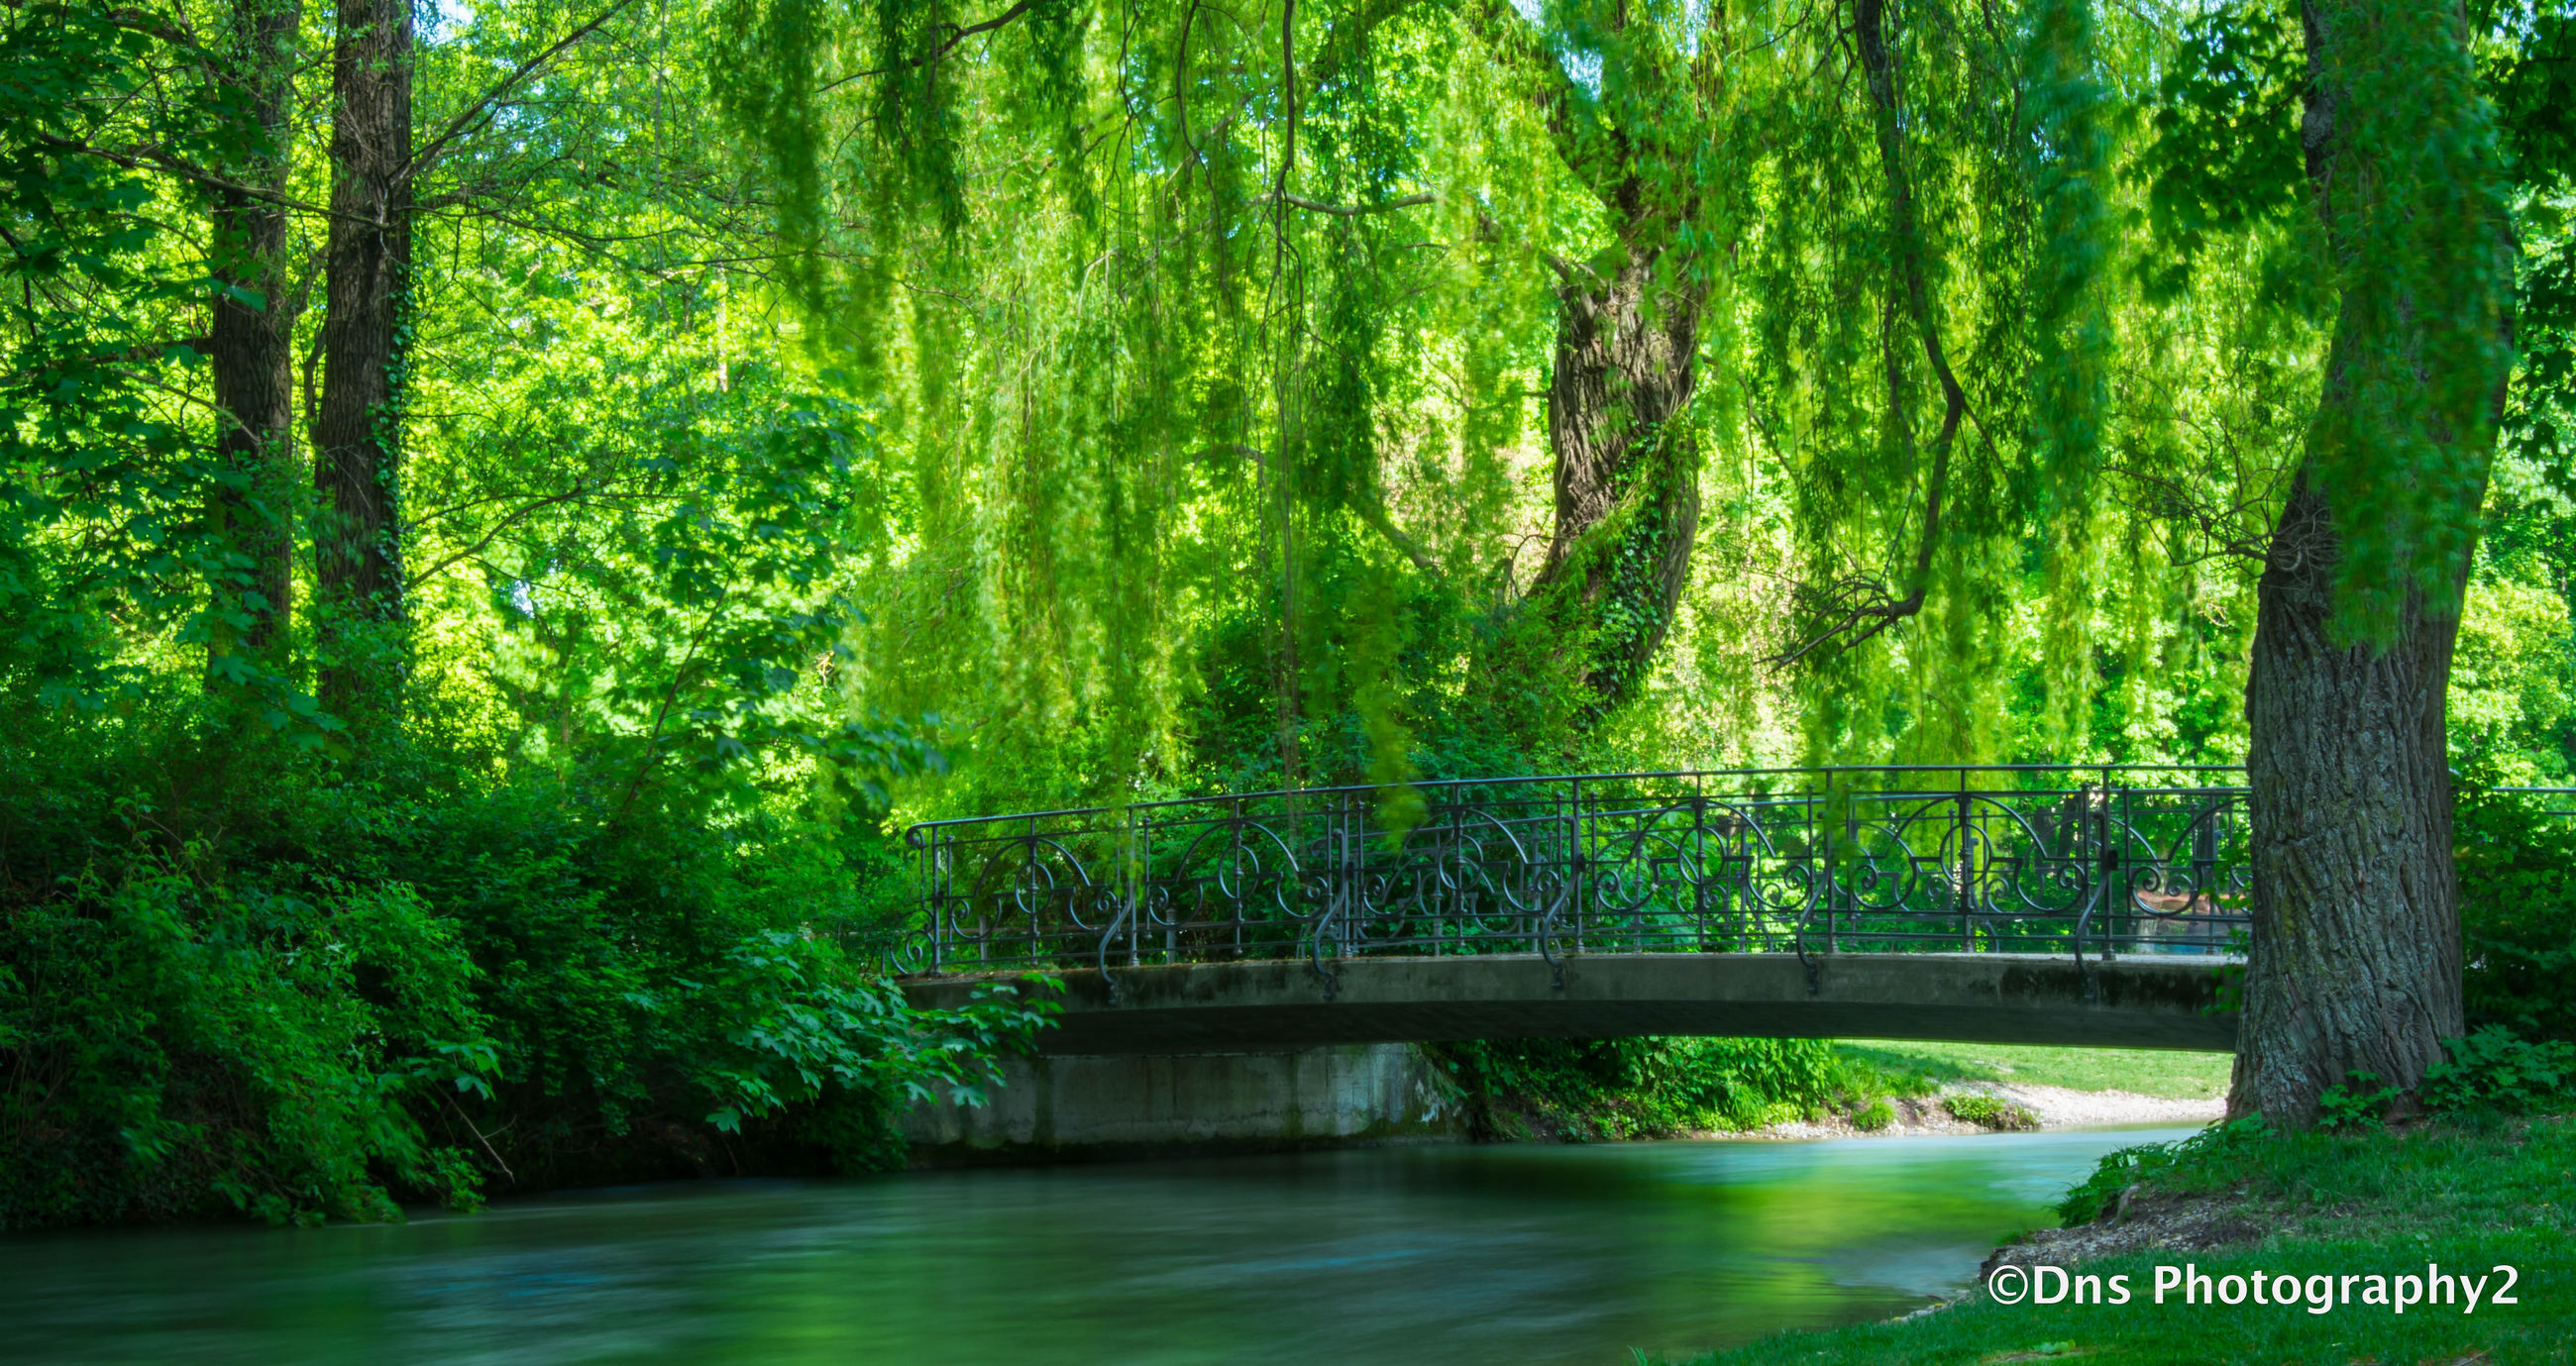 tree, water, tranquility, green color, growth, tranquil scene, beauty in nature, nature, forest, scenics, river, lush foliage, waterfront, branch, idyllic, bridge - man made structure, lake, green, day, connection